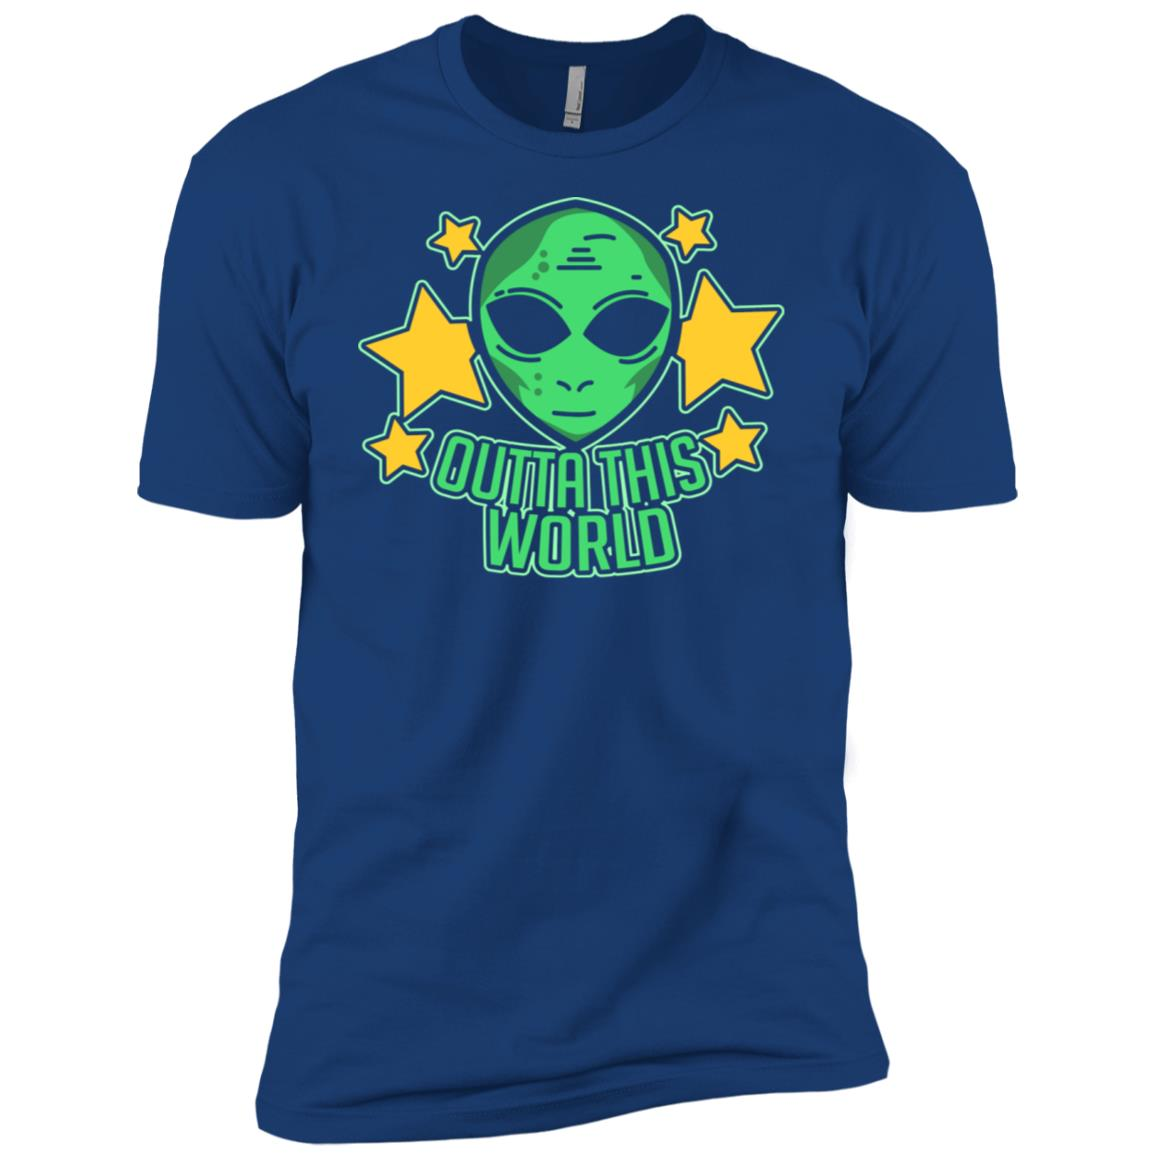 Space Alien Ls Outta This World Funny Cute Gift Tee Men Short Sleeve T-Shirt